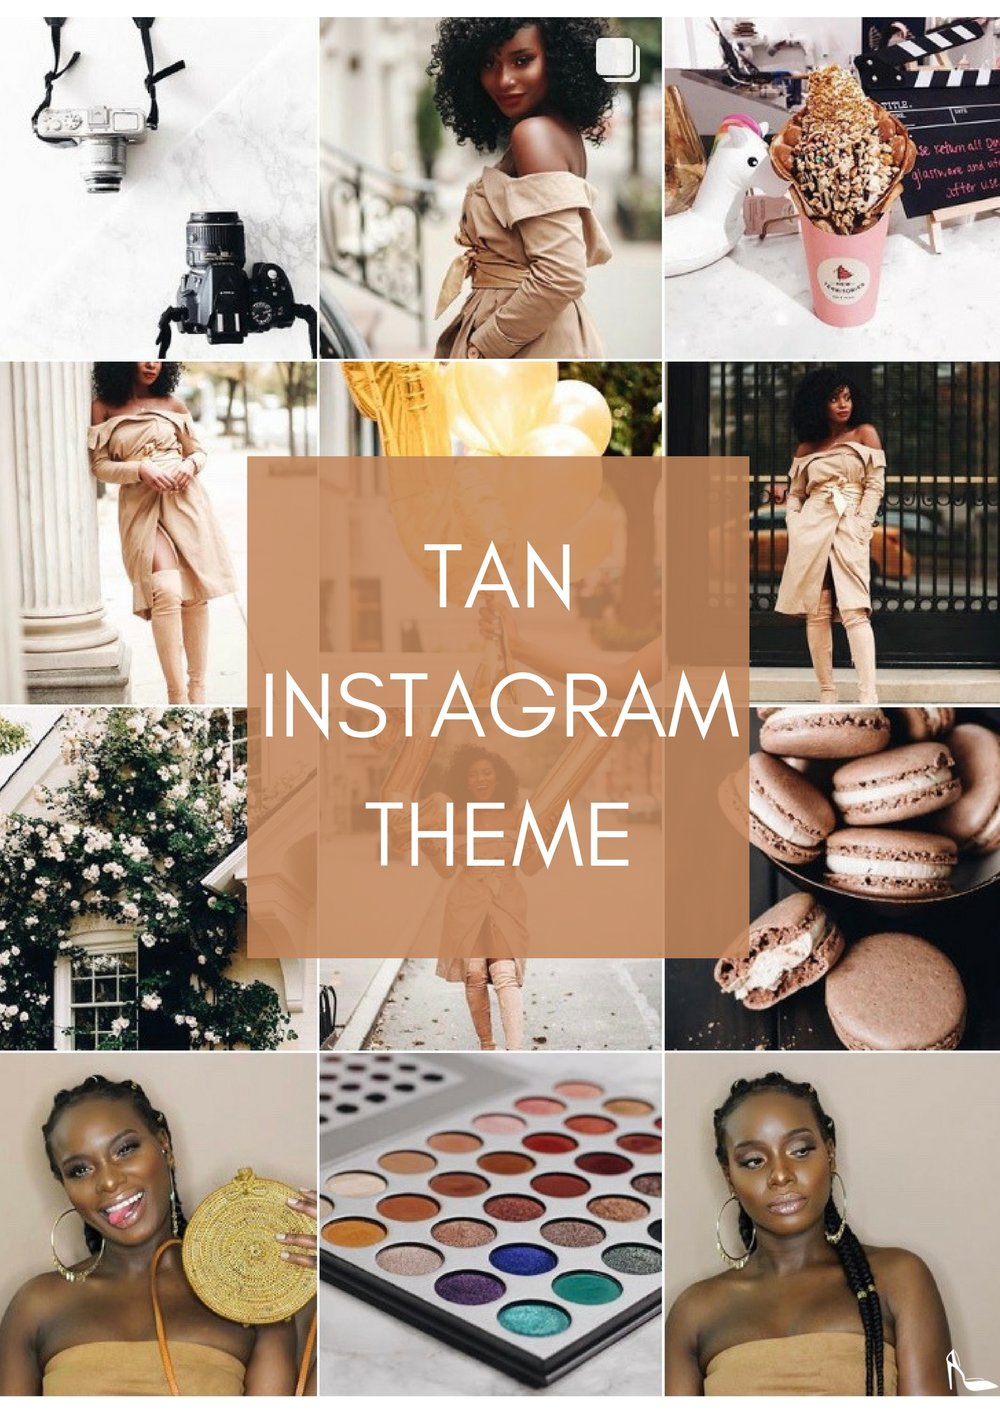 TAN-INSTAGRAM-THEME